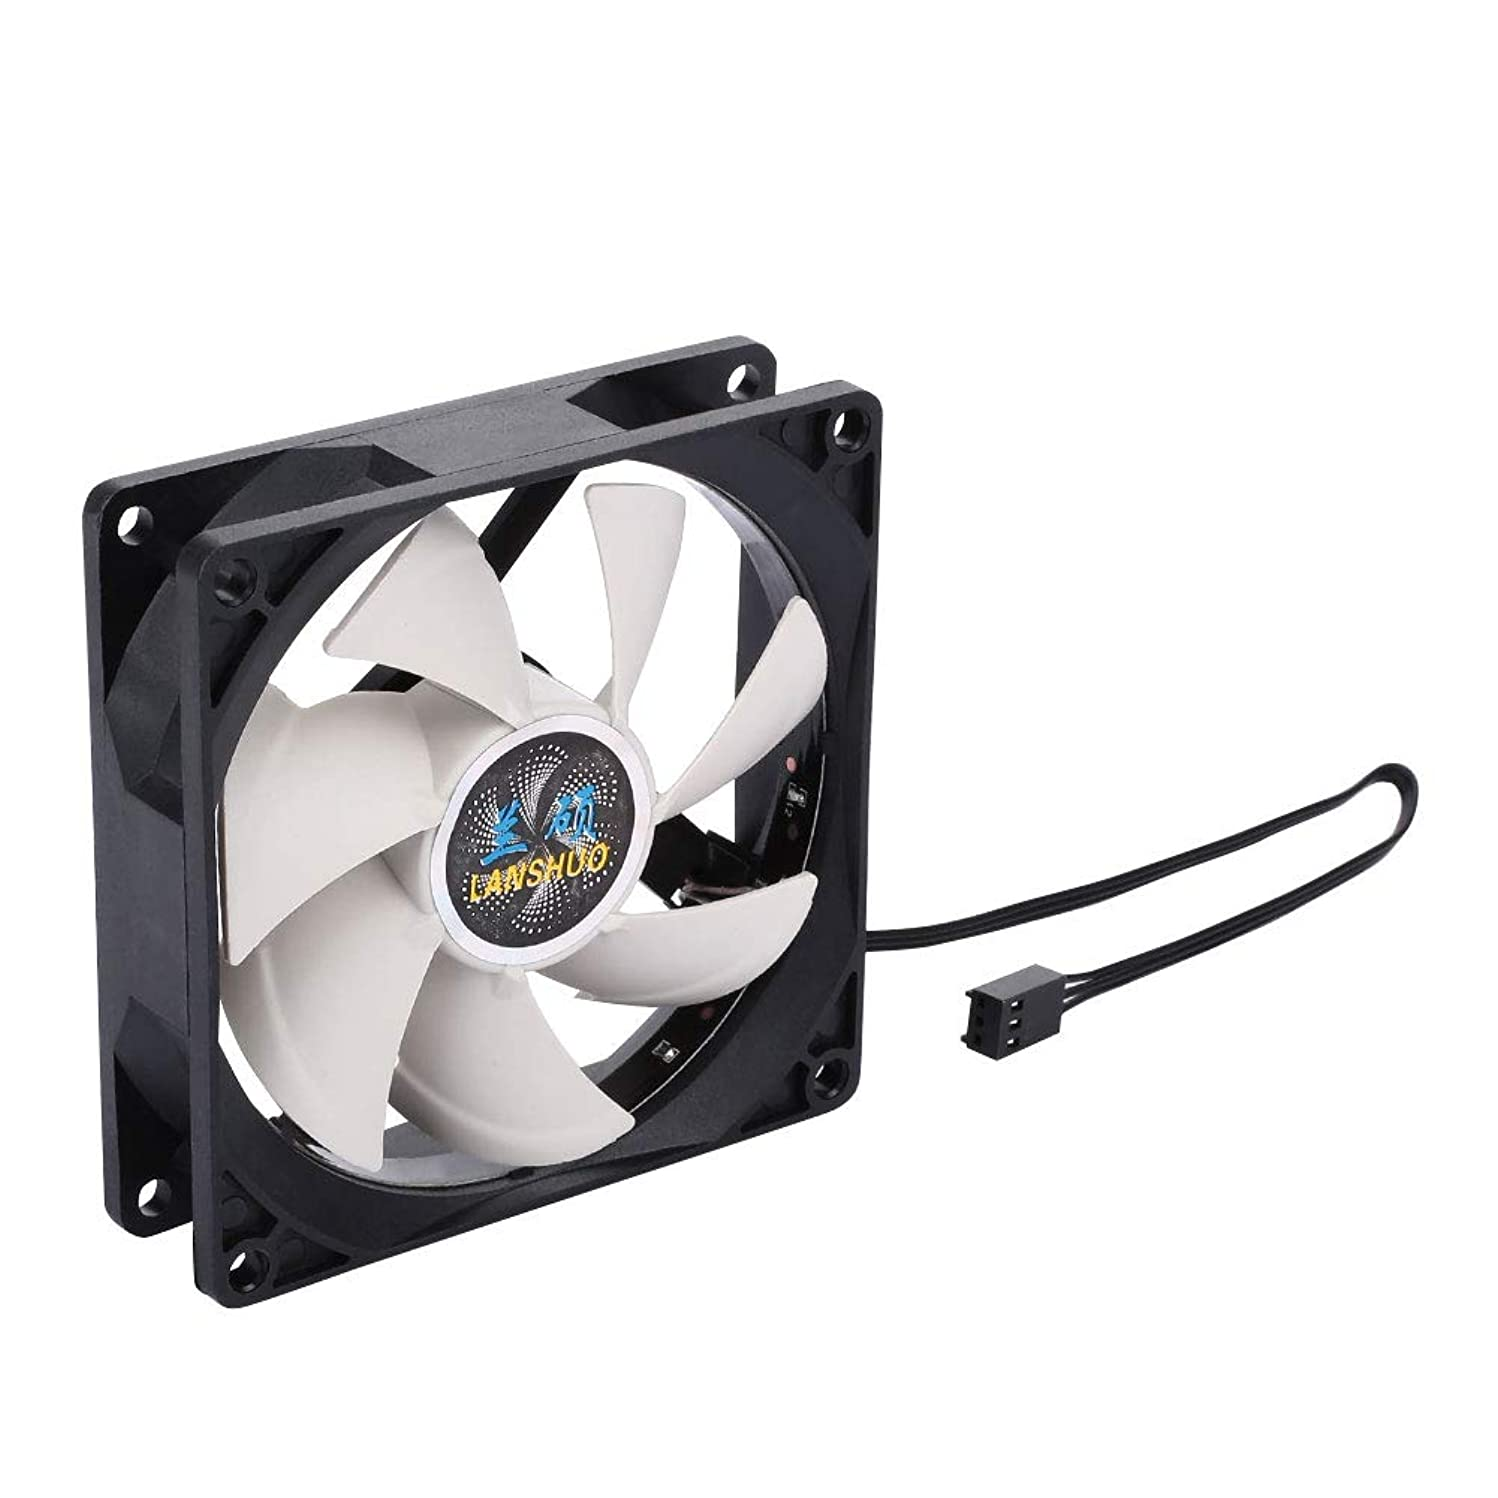 NYWENY 90 mm CPU Fan Colorful CPU Cooler Master Premium CPU Case Fan Heatsink CPU Cooler Fan Game Player Heat Radiation Axial Fan Coloured